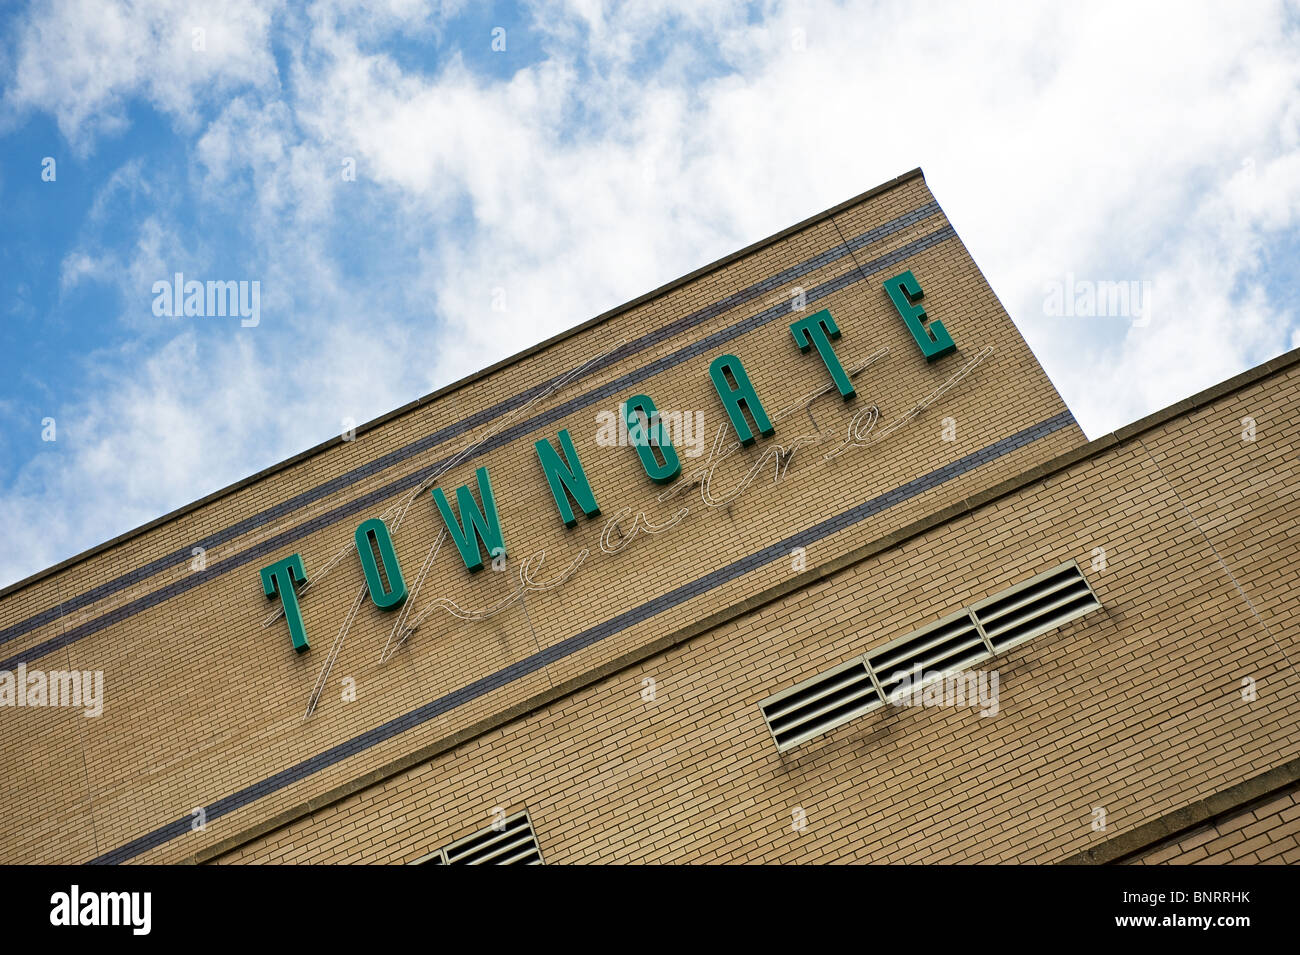 The Towngate Theatre in Basildon in Essex.  Photo by Gordon Scammell - Stock Image